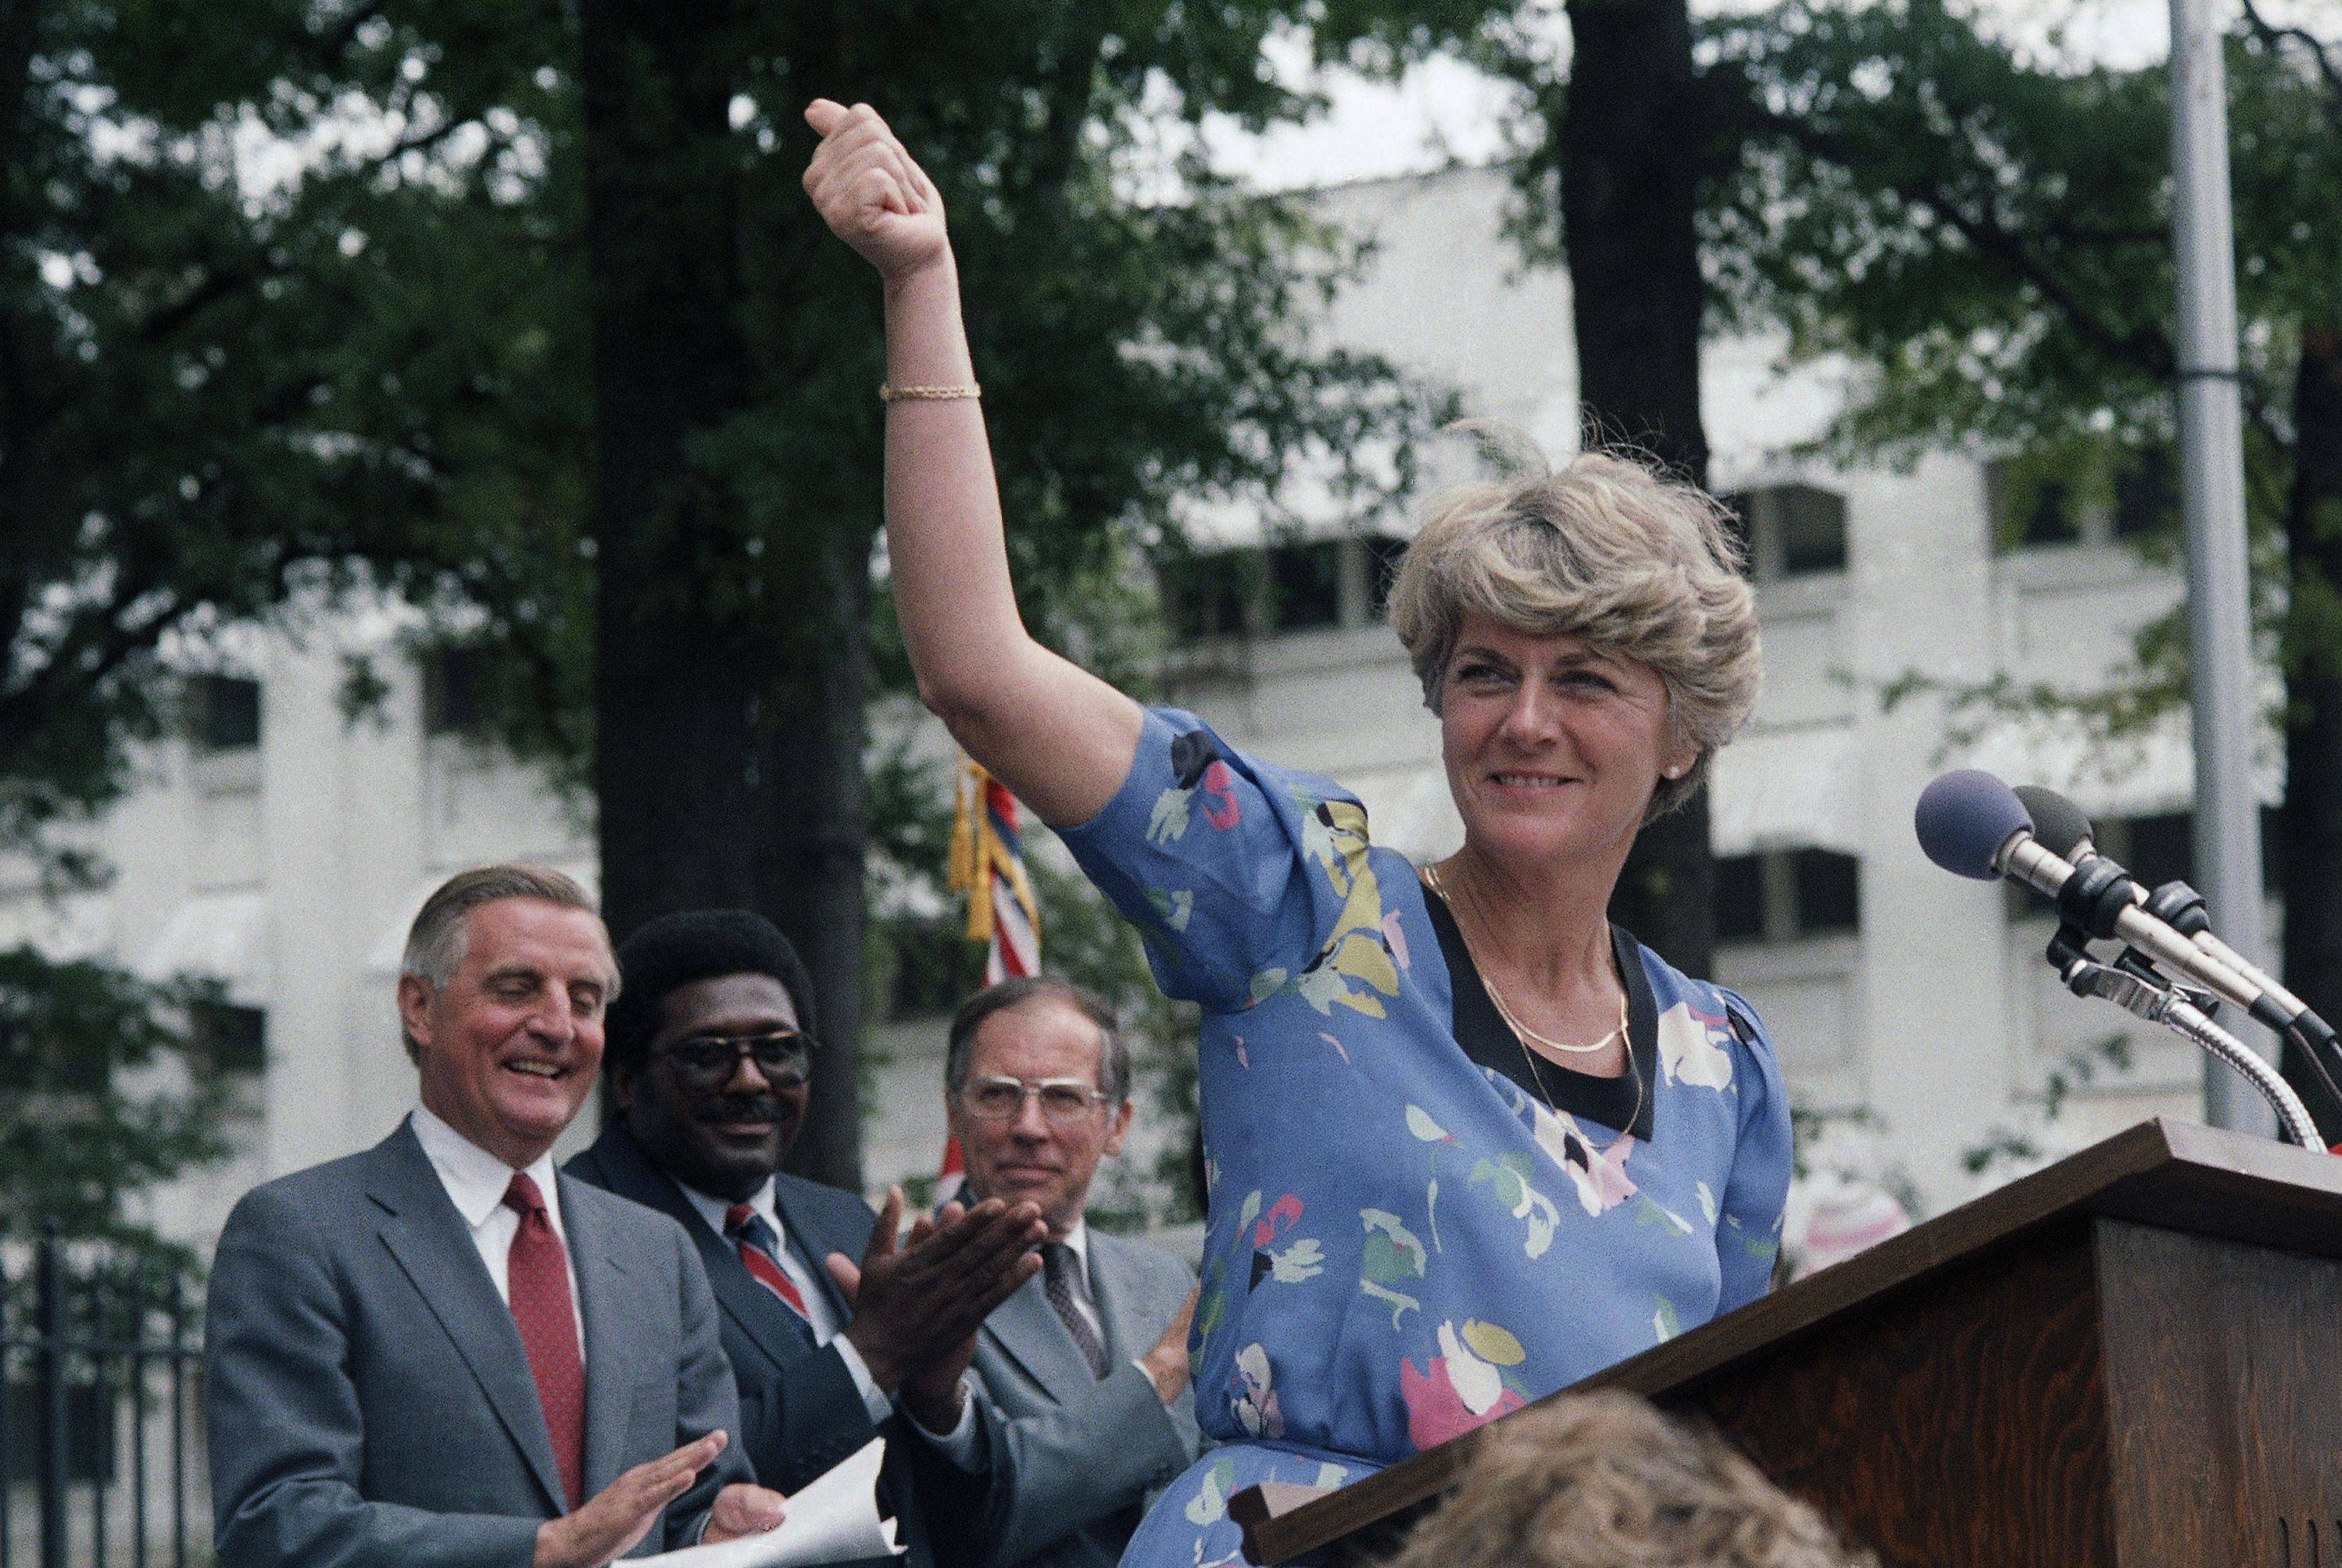 In this Wednesday, Aug. 1, 1984 file picture, Democratic Vice Presidential candidate Geraldine Ferraro gives the thumbs-up sign to a crowd of supporters in downtown Jackson, Miss. as Walter Mondale and Ferraro kicked off their 1984 campaign in this Southern city. Behind Ferraro are Mondale, state Rep. Robert Clark and former Gov. William Winter.